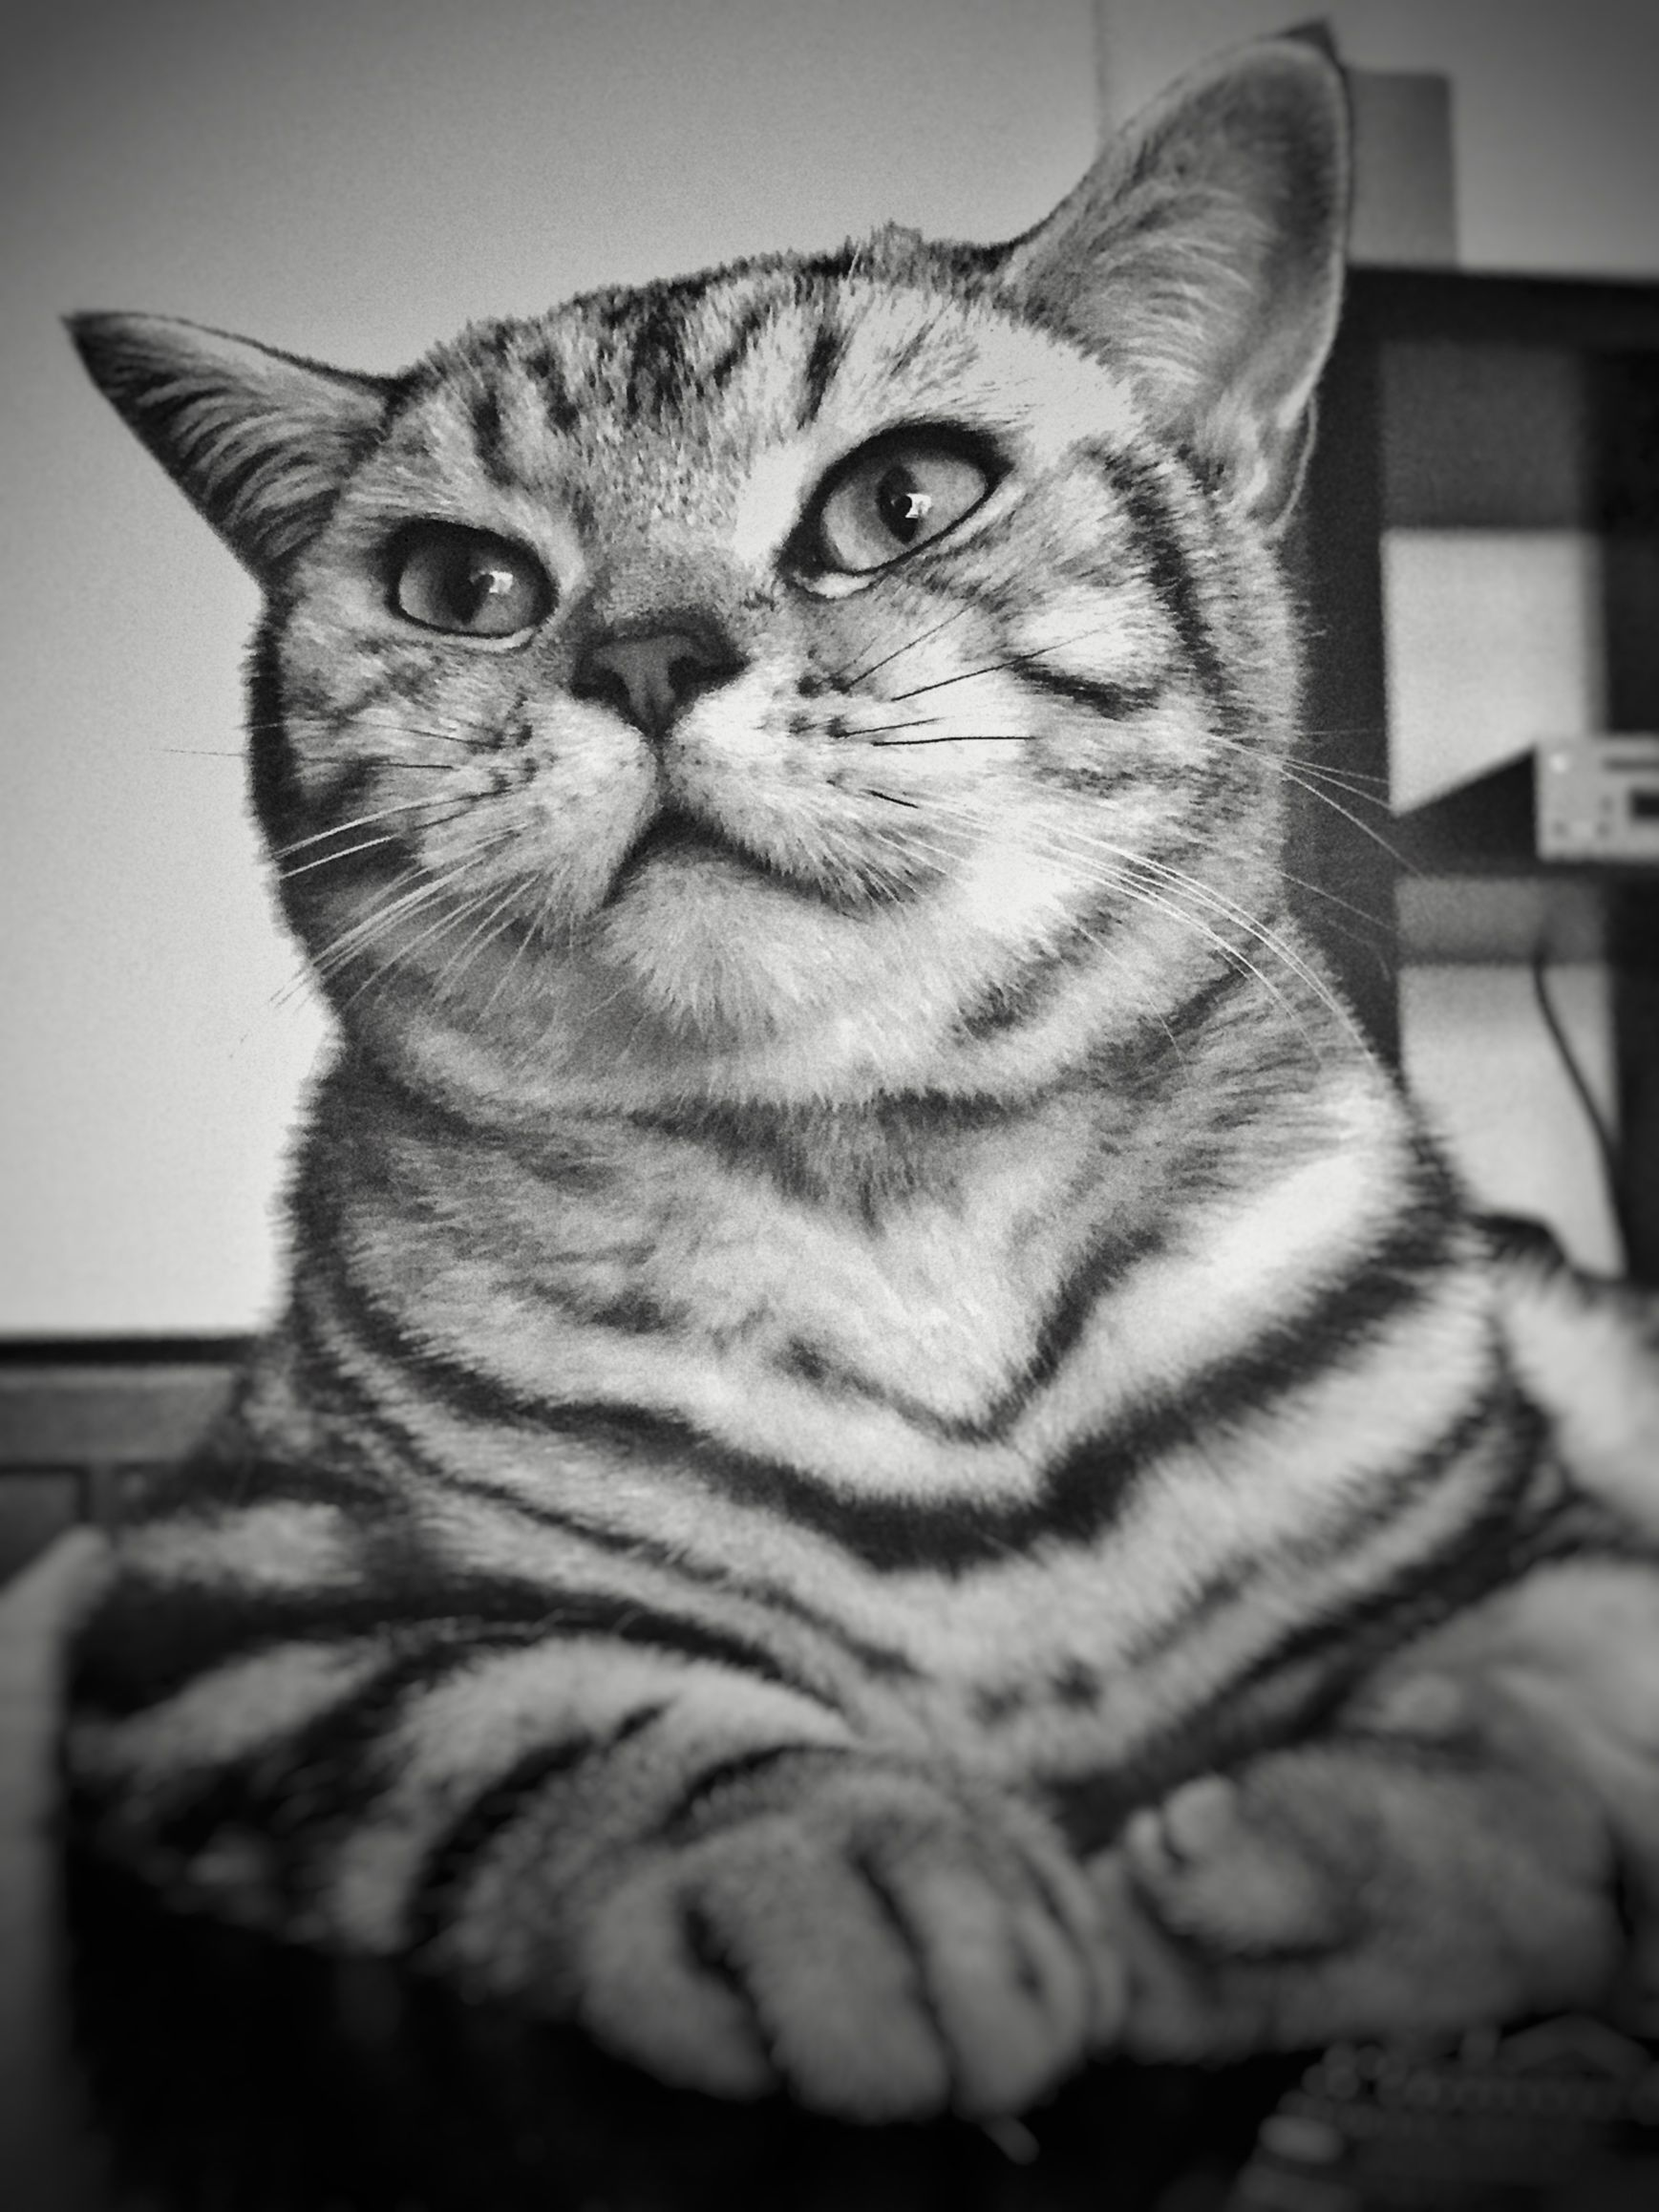 Paco a British shorthair silver tabby 7 months old